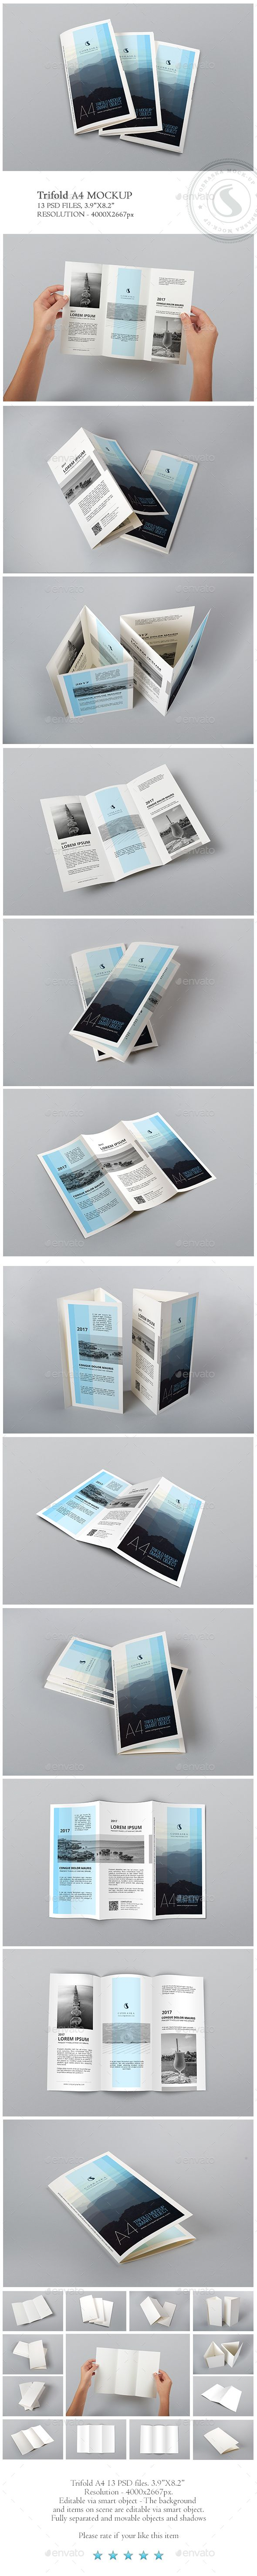 A4 Trifold Mockup by Cobraska A4 Trifold Mockup Features: 13 PSD presentation, 3.9×8.2� Easy and Fast editing via Smart Object, Changeable background via Smart